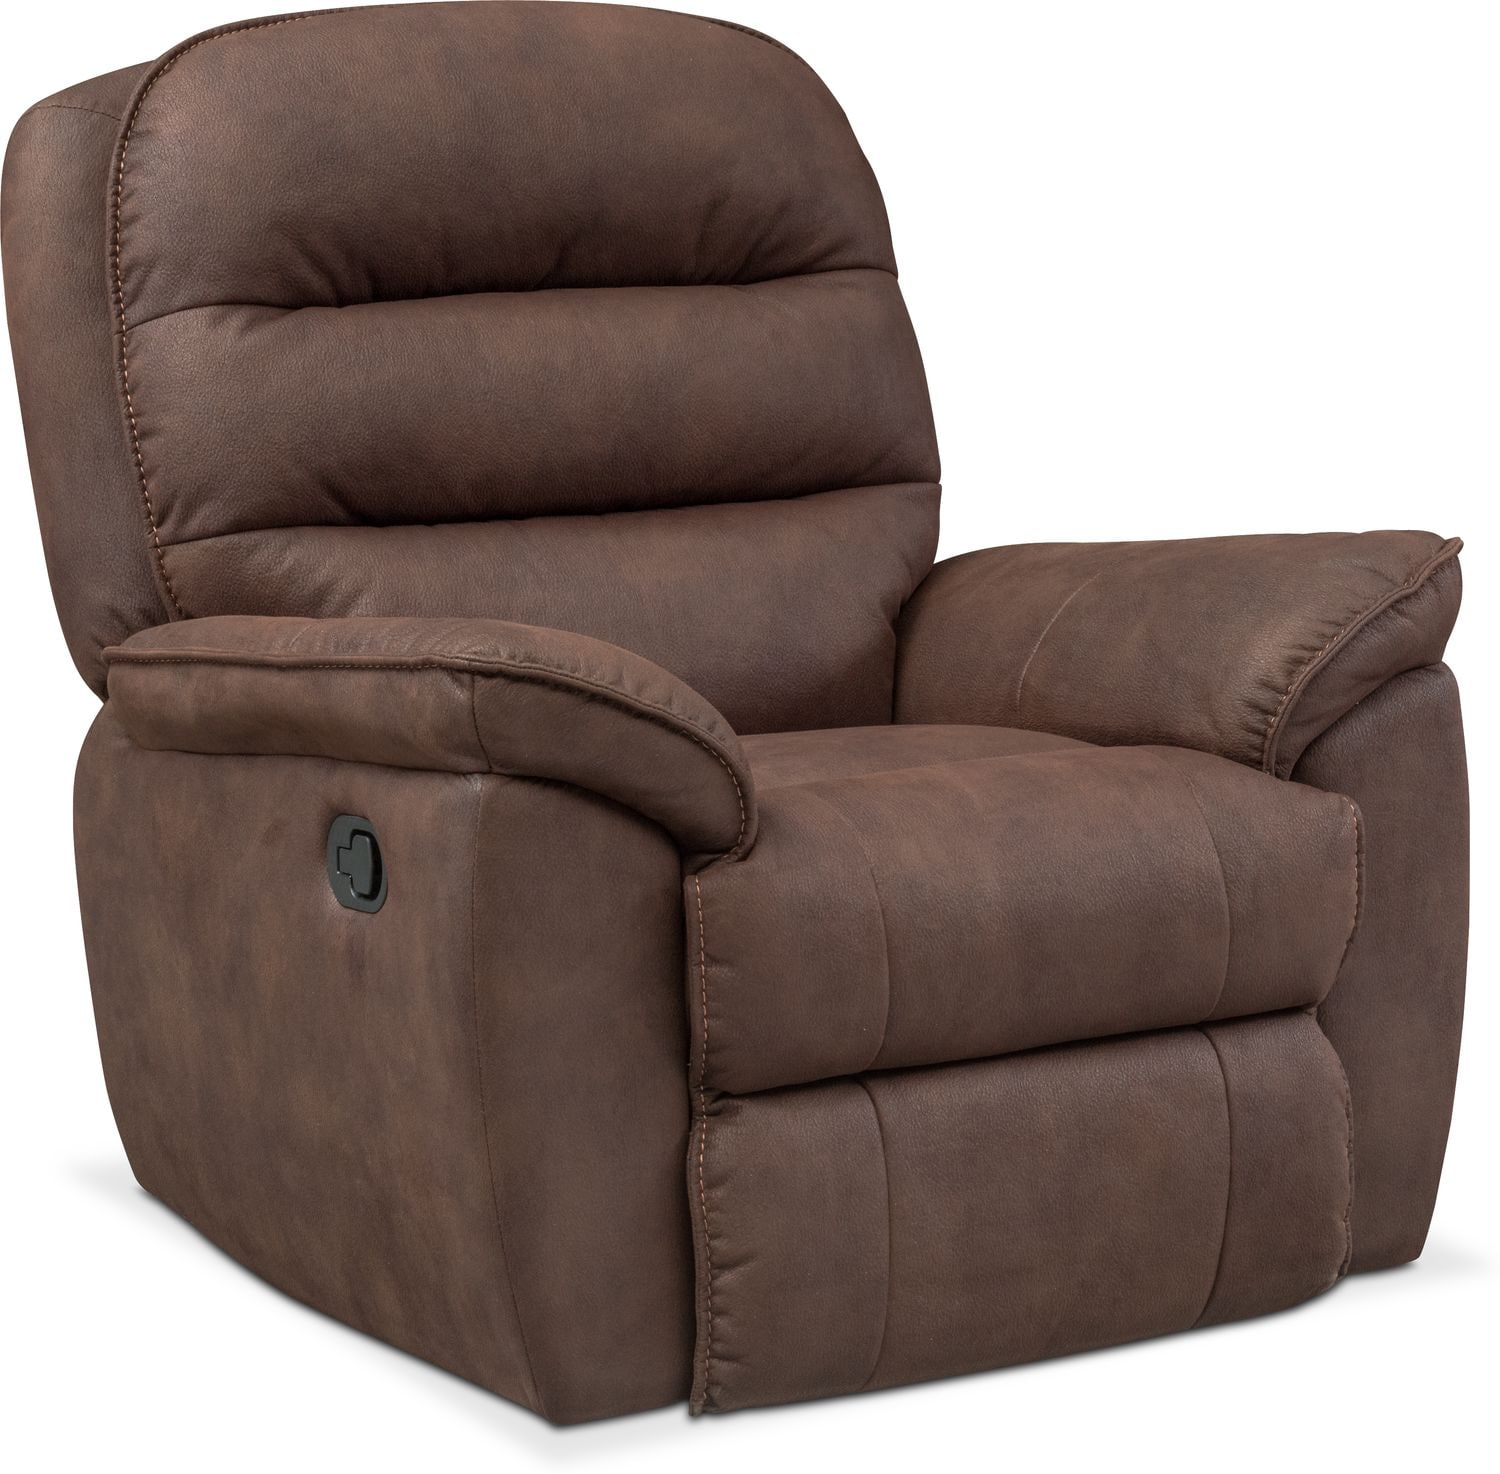 Recliners Rockers Value City Furniture Value City Furniture